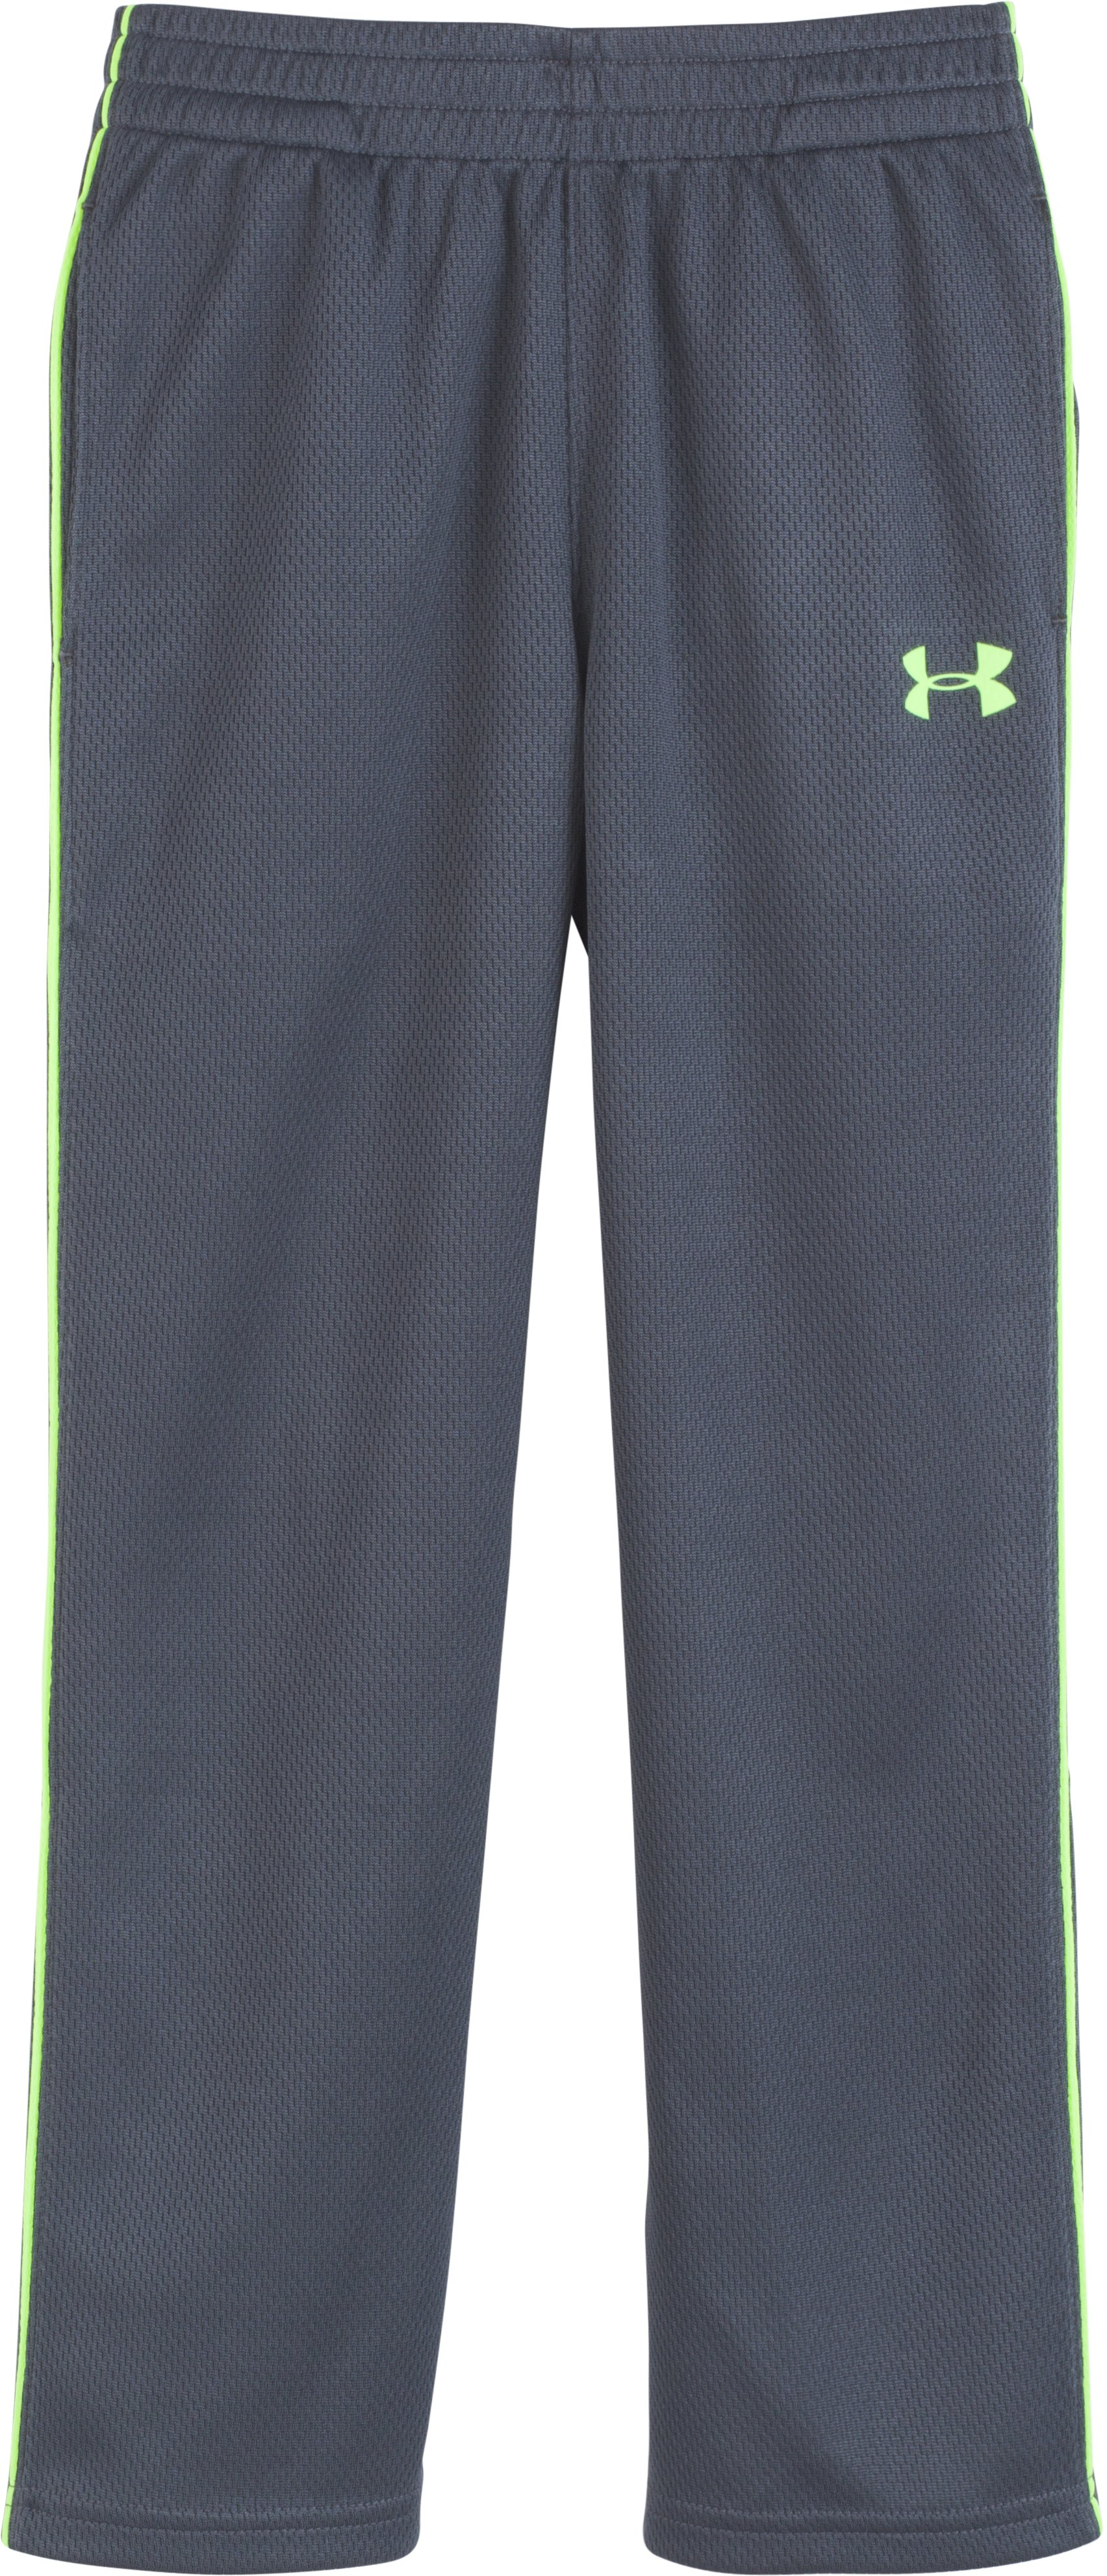 Boys' Pre-School UA Midweight Warm-Up Pants , STEALTH GRAY